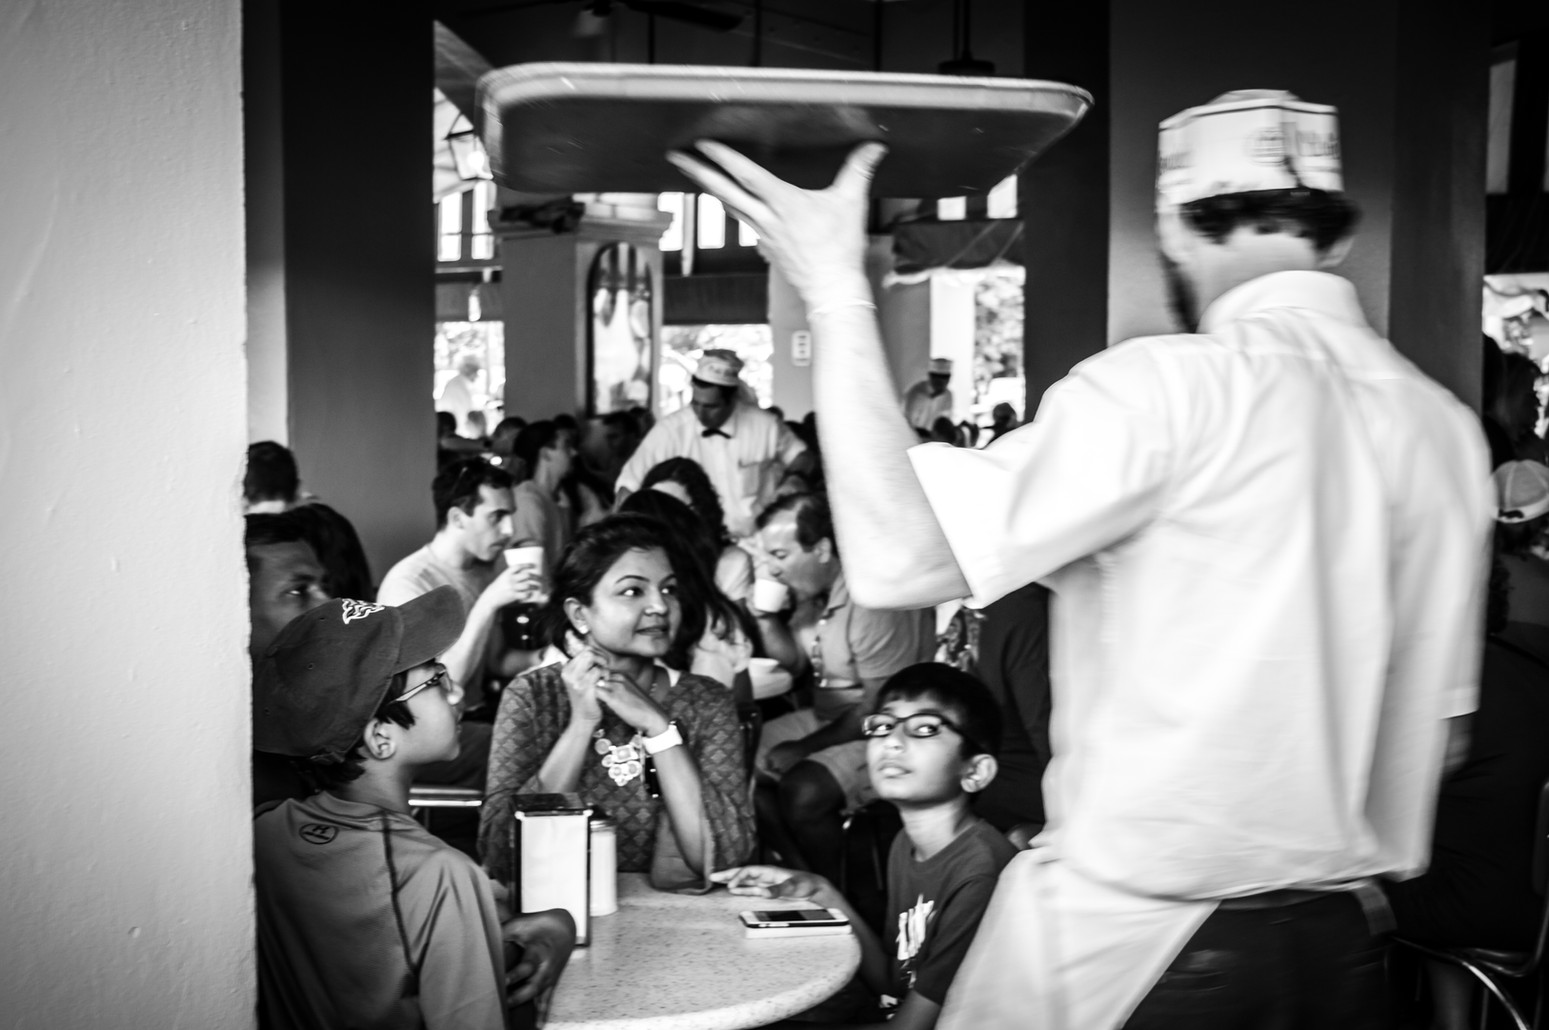 A family eagerly welcomes their long-awaited beignets at Cafe Du Monde in New Orleans